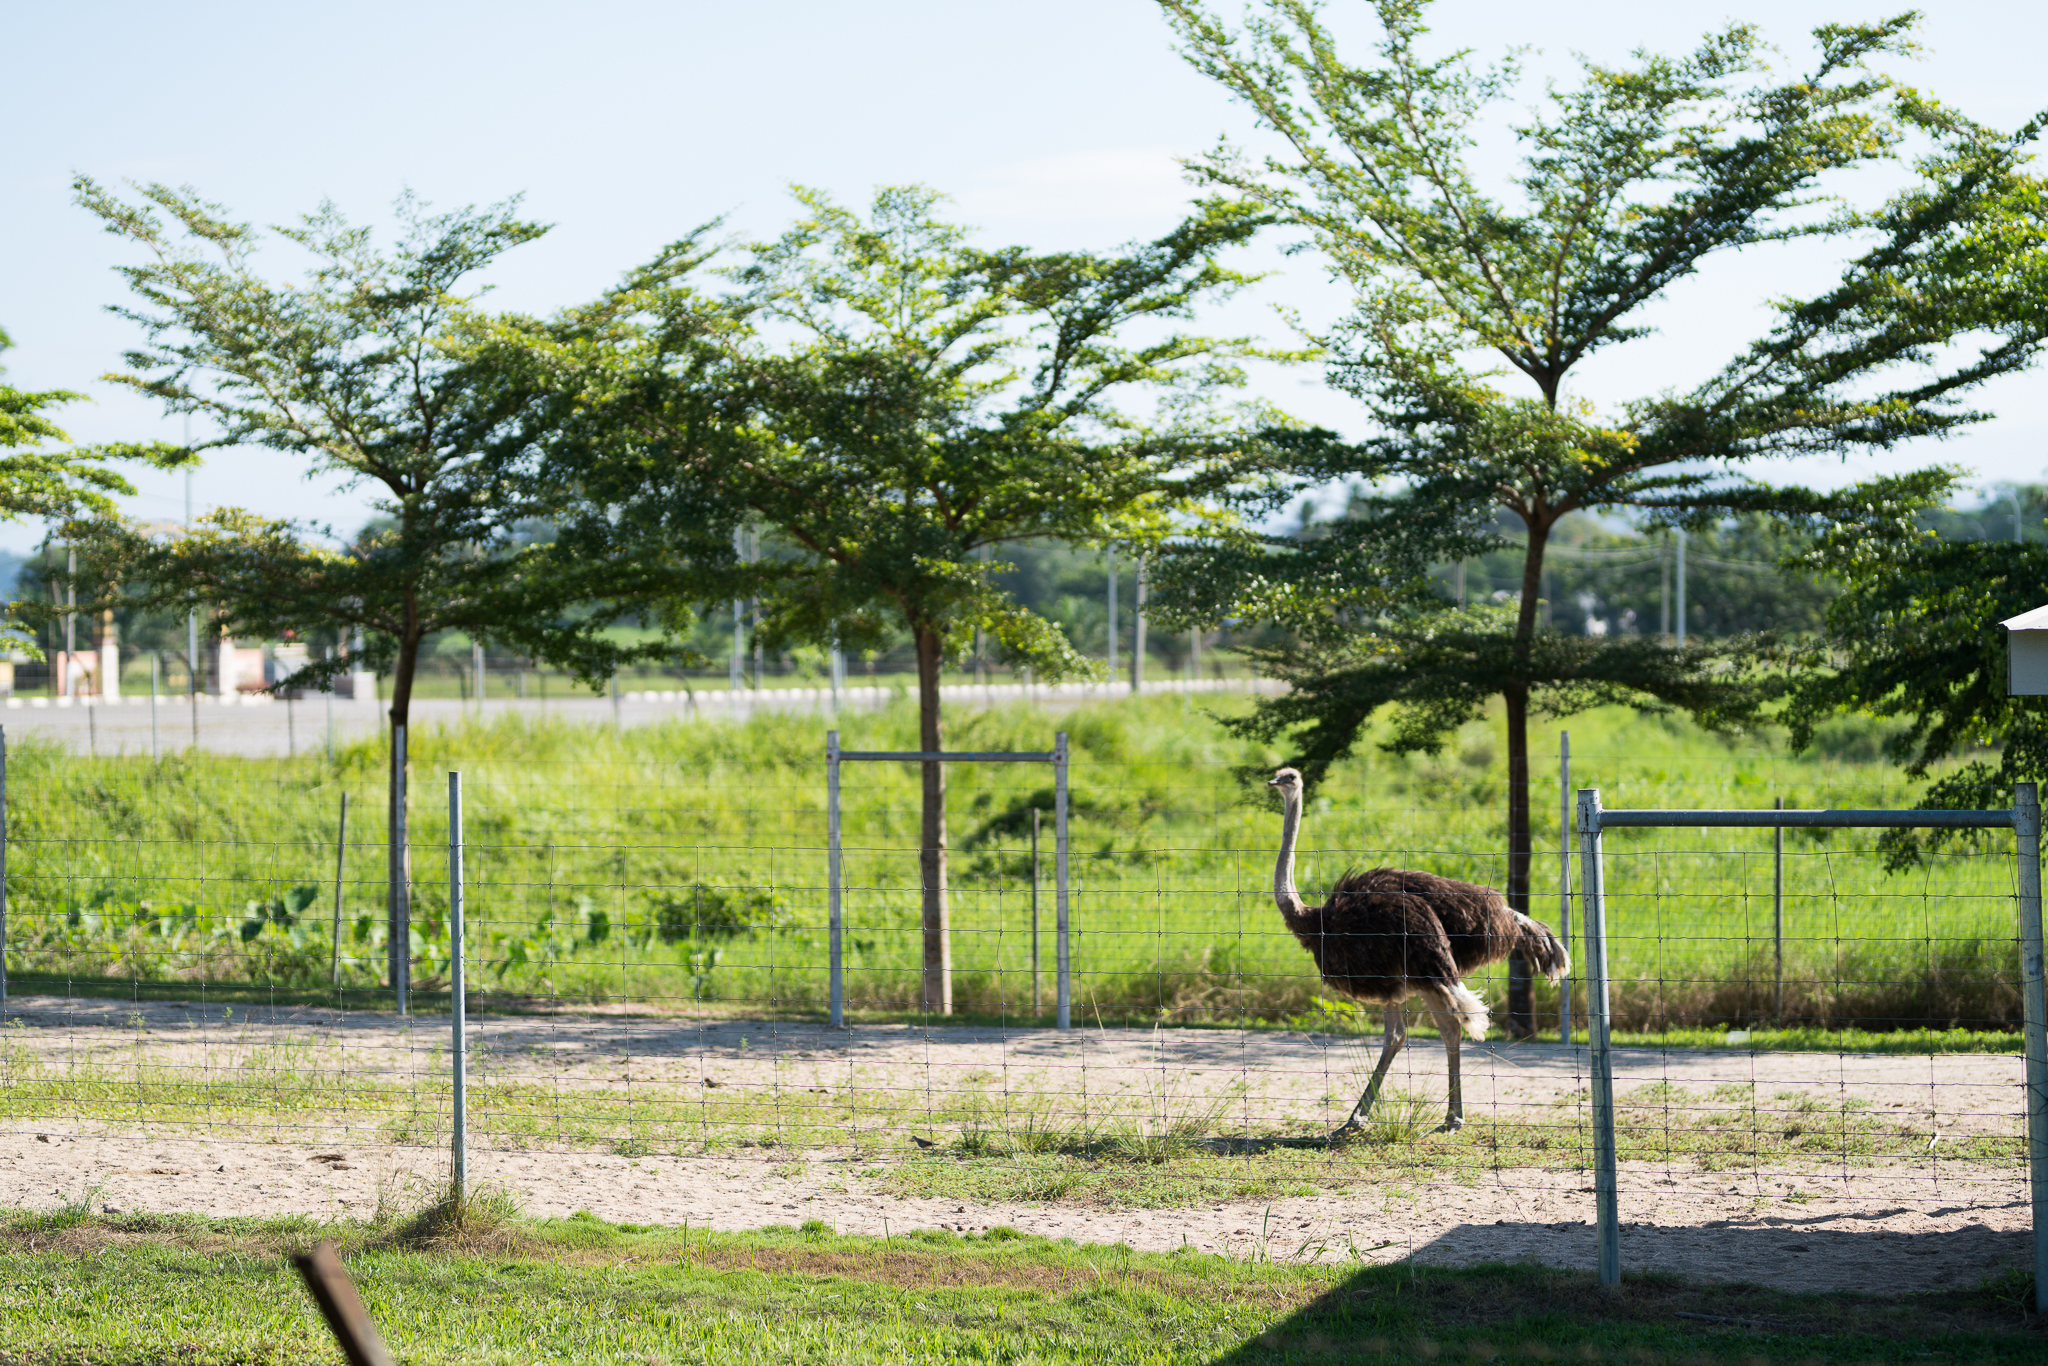 Ostriches by the side of the road! They're like big chickens.